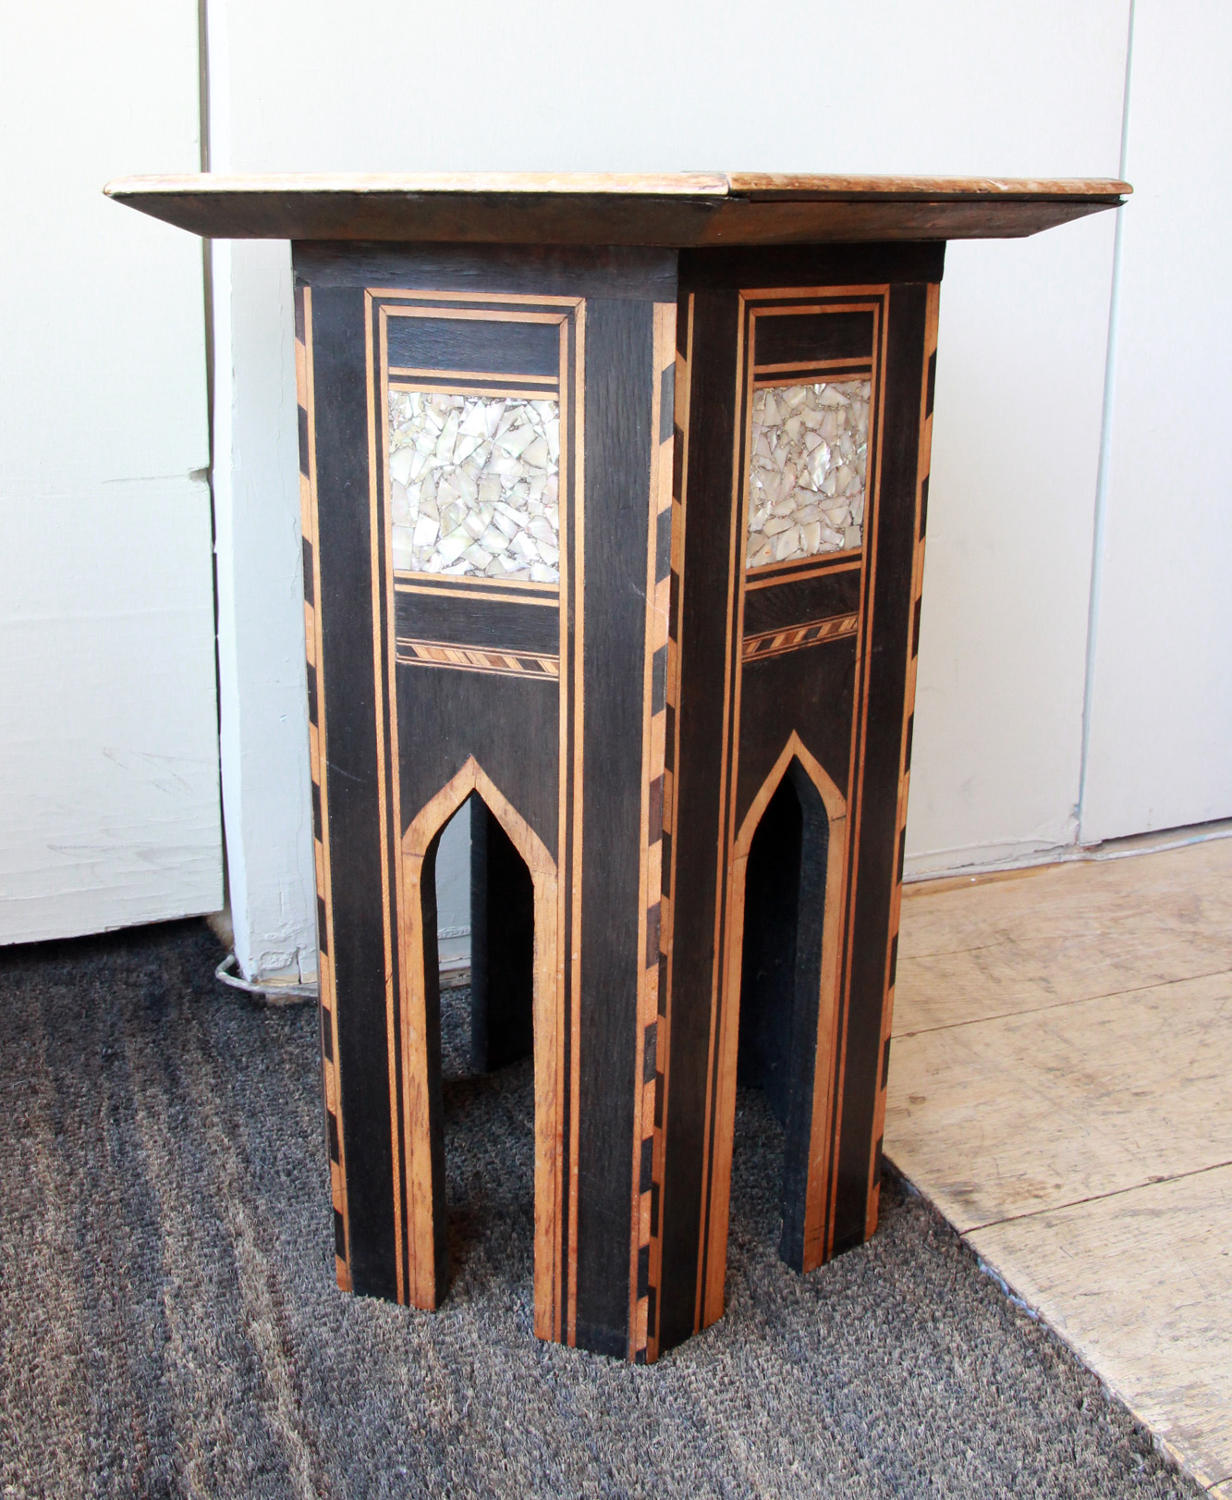 A Small Hexagonal Turkish Table